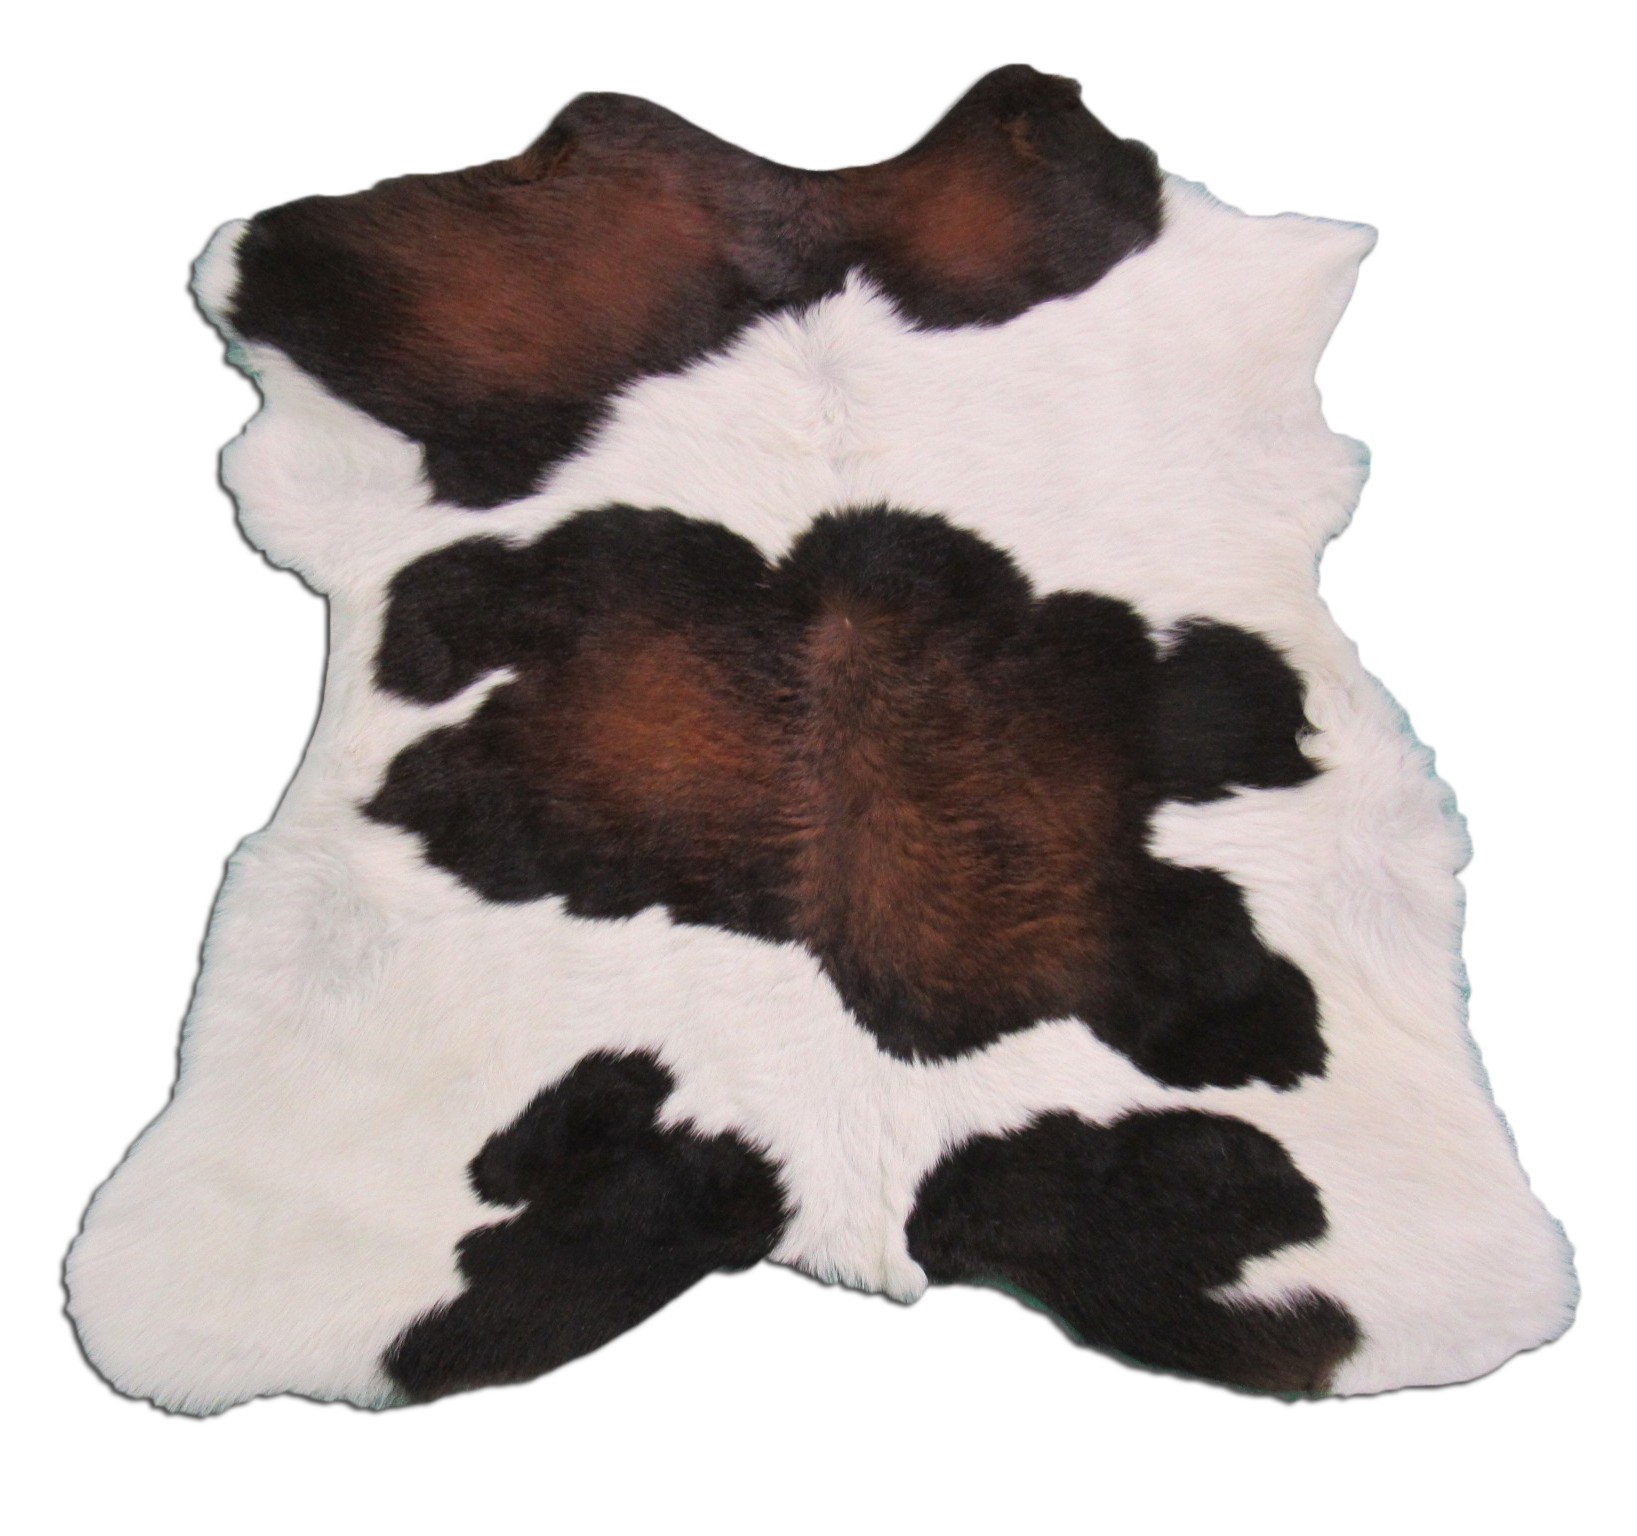 A-1222 Tricolor Calf Skin Rug - Size: 37 inches X 34 inches